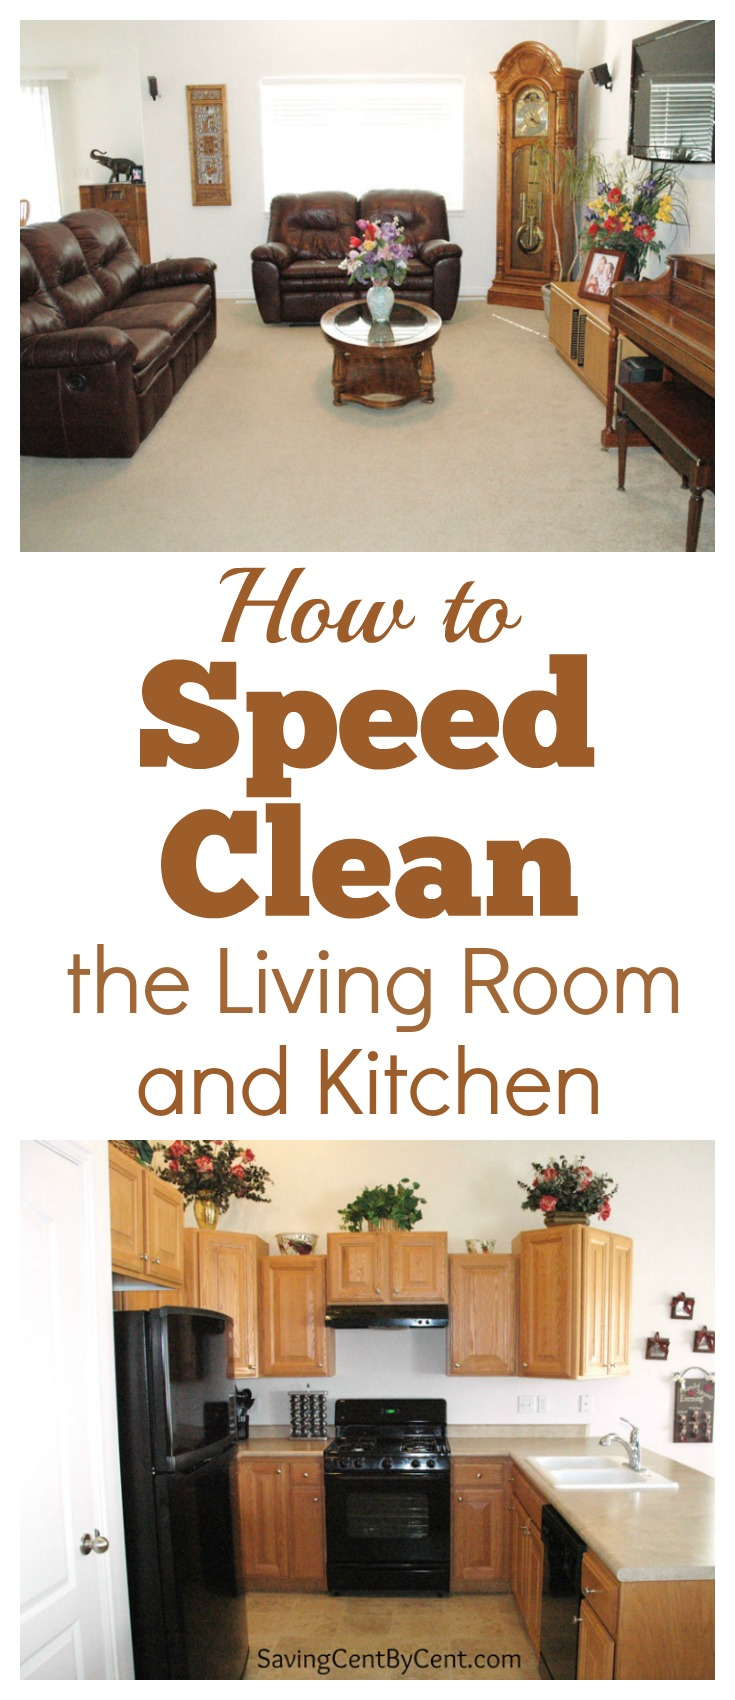 how to speed clean the living room and kitchen